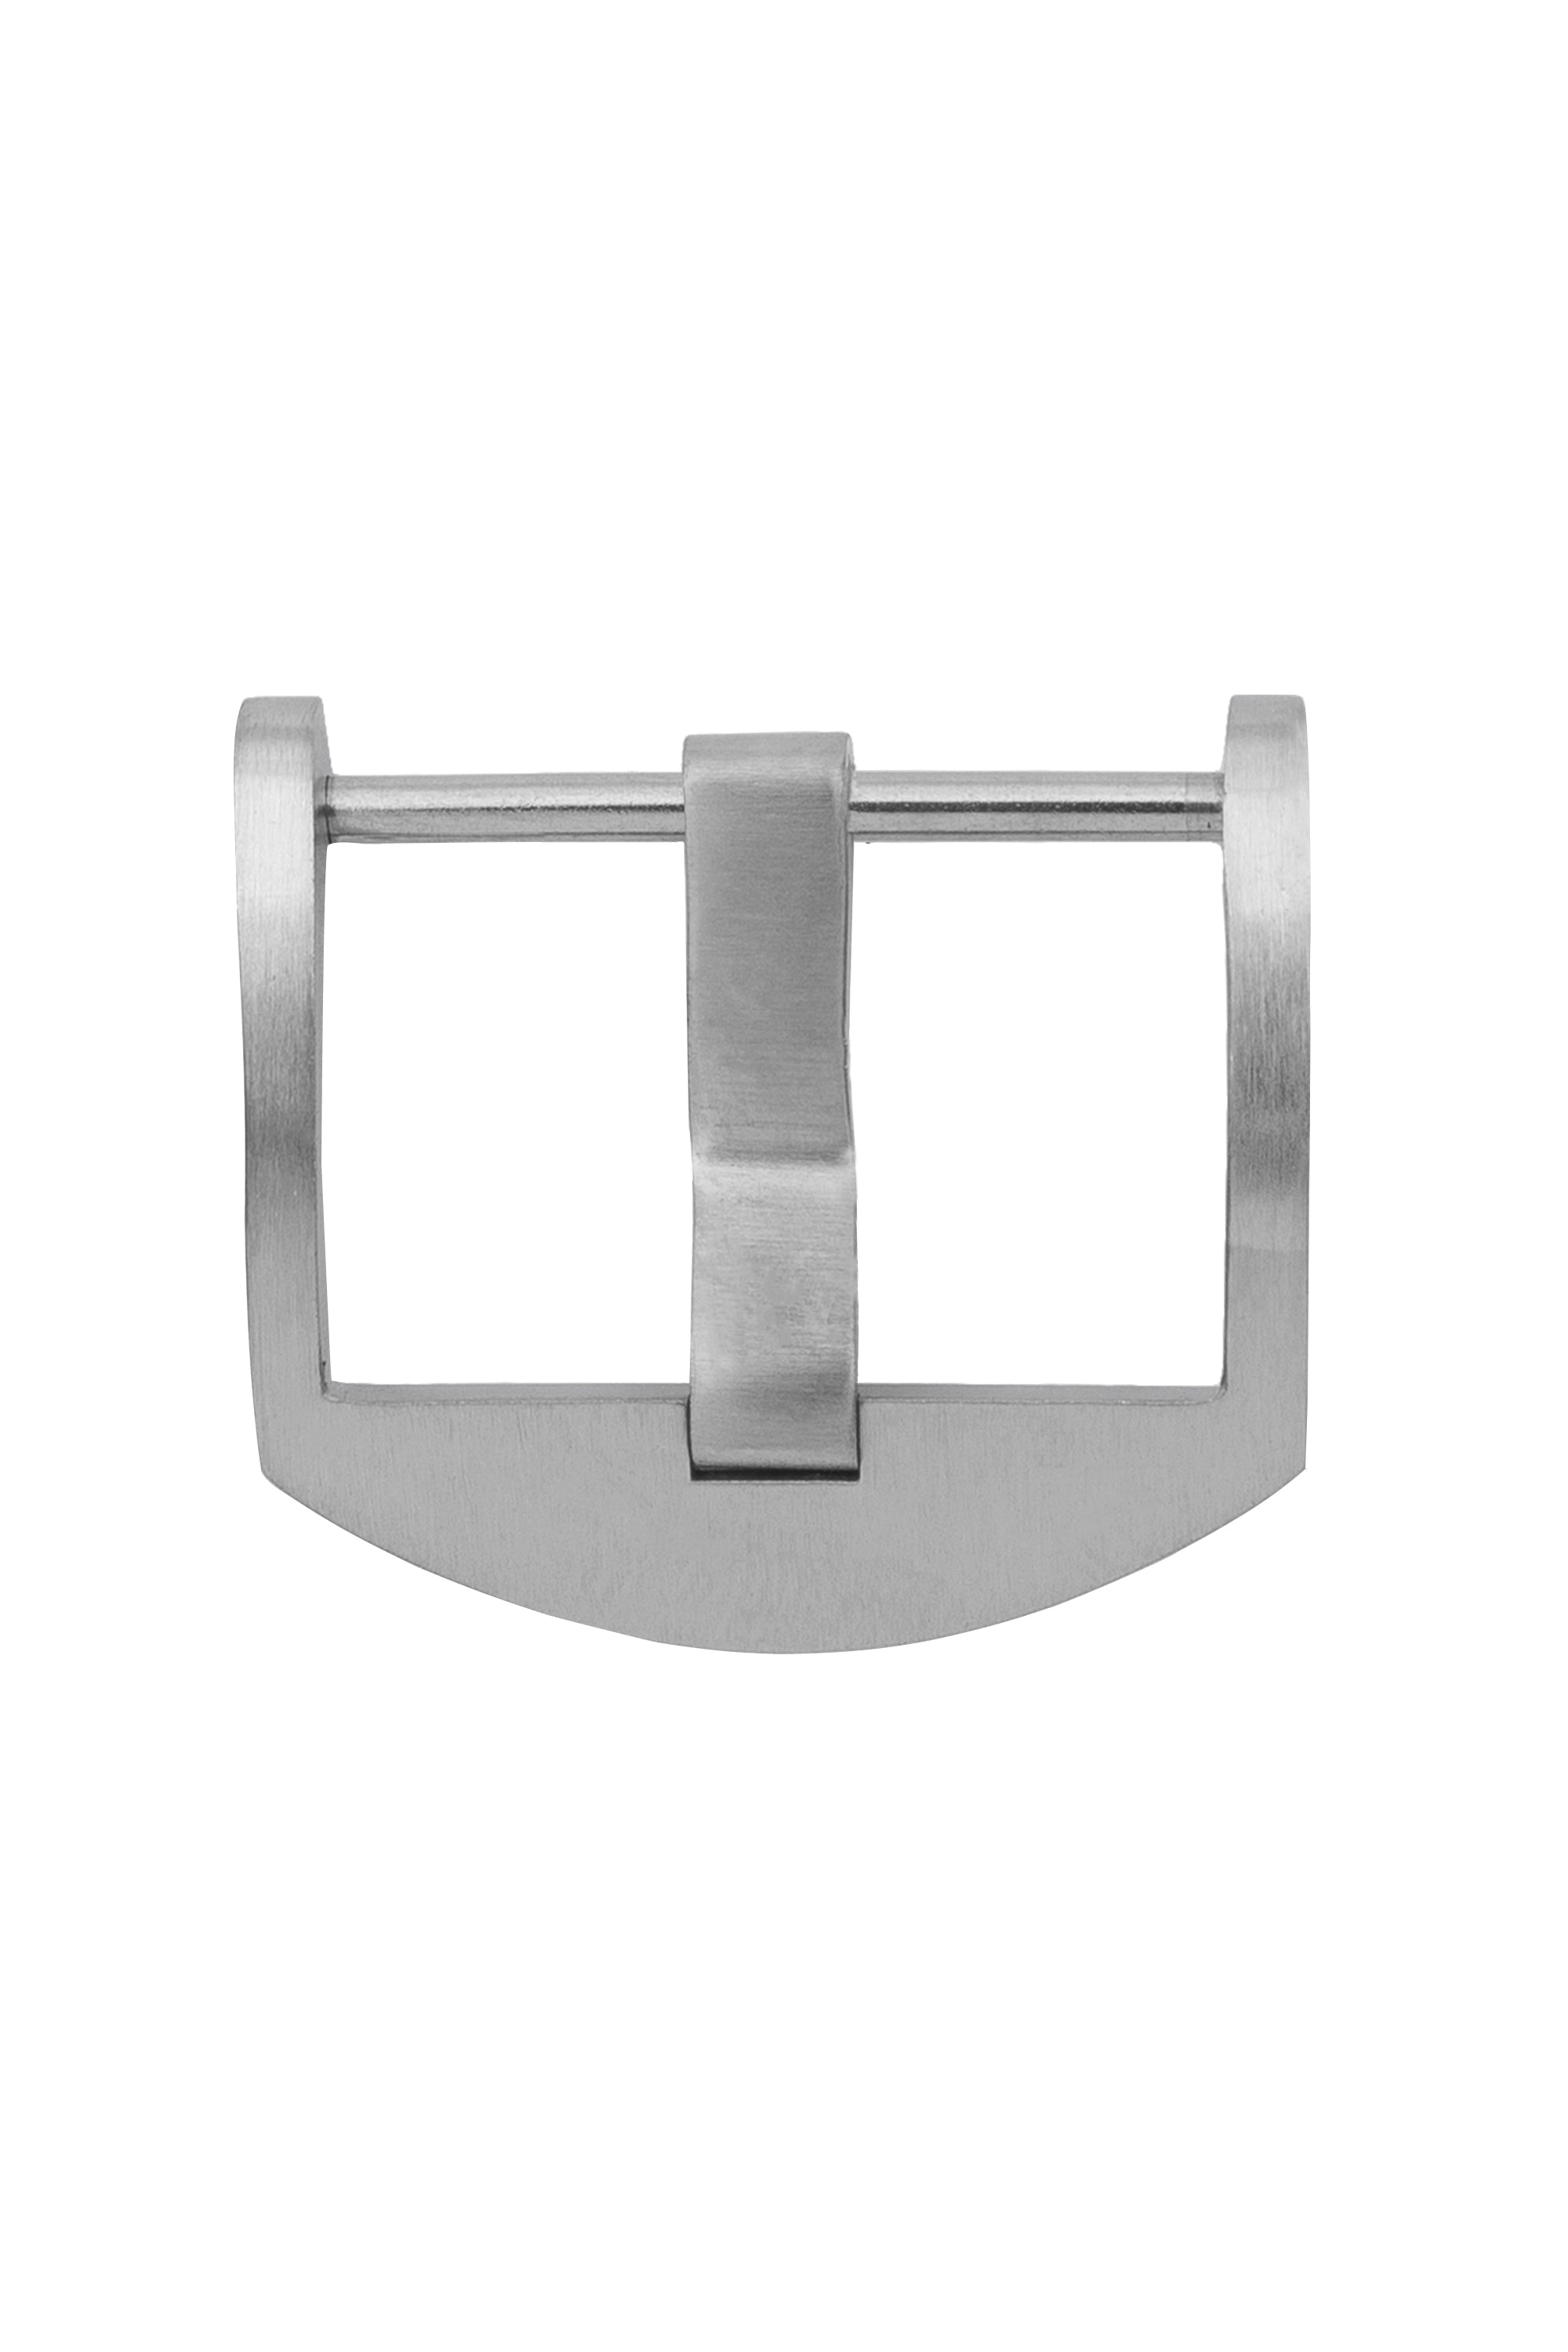 BRUSHED ARD Screw-in Buckle